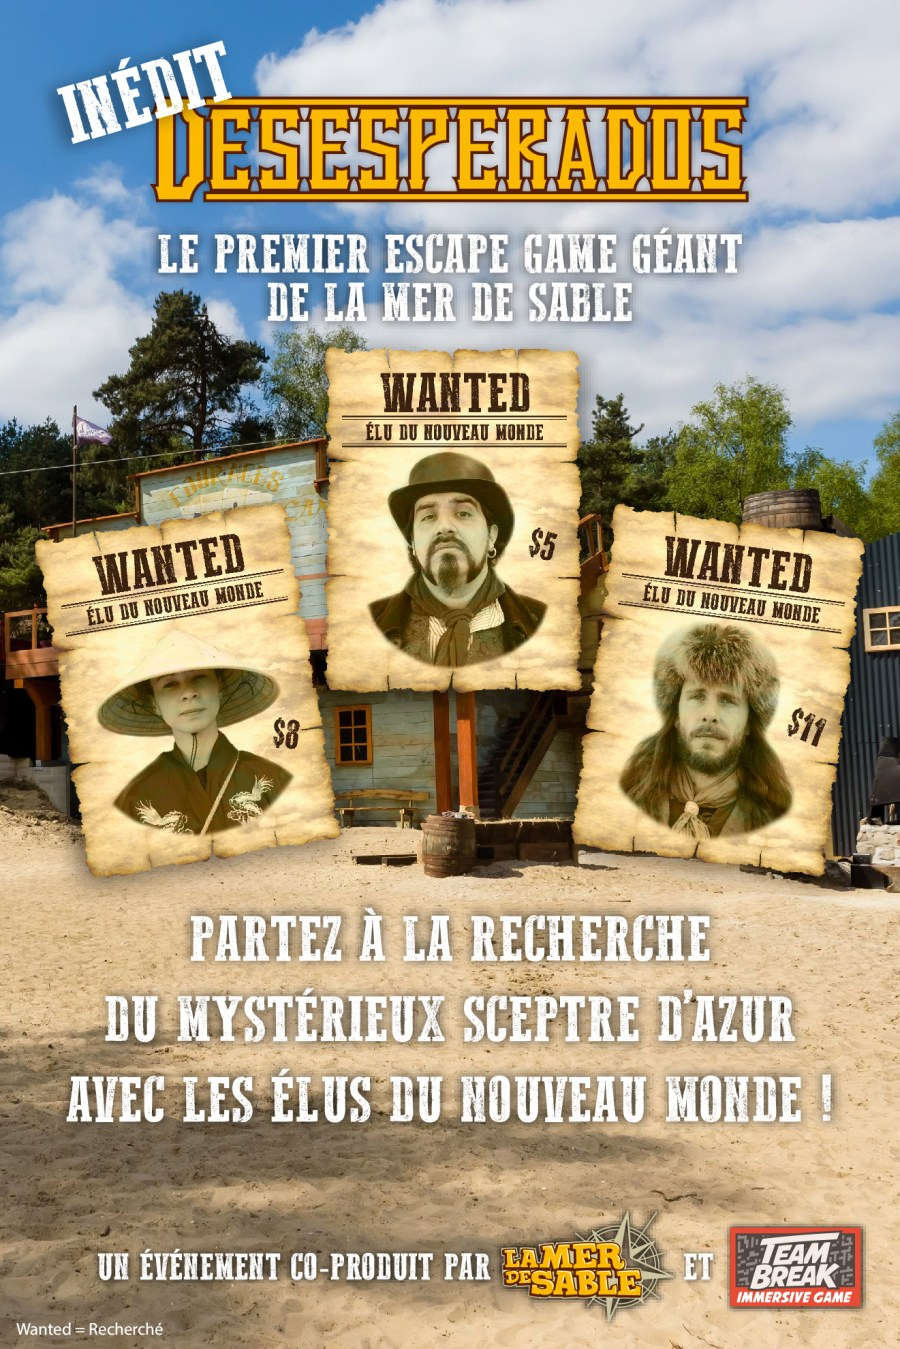 Escape game géant à la Mer de Sable